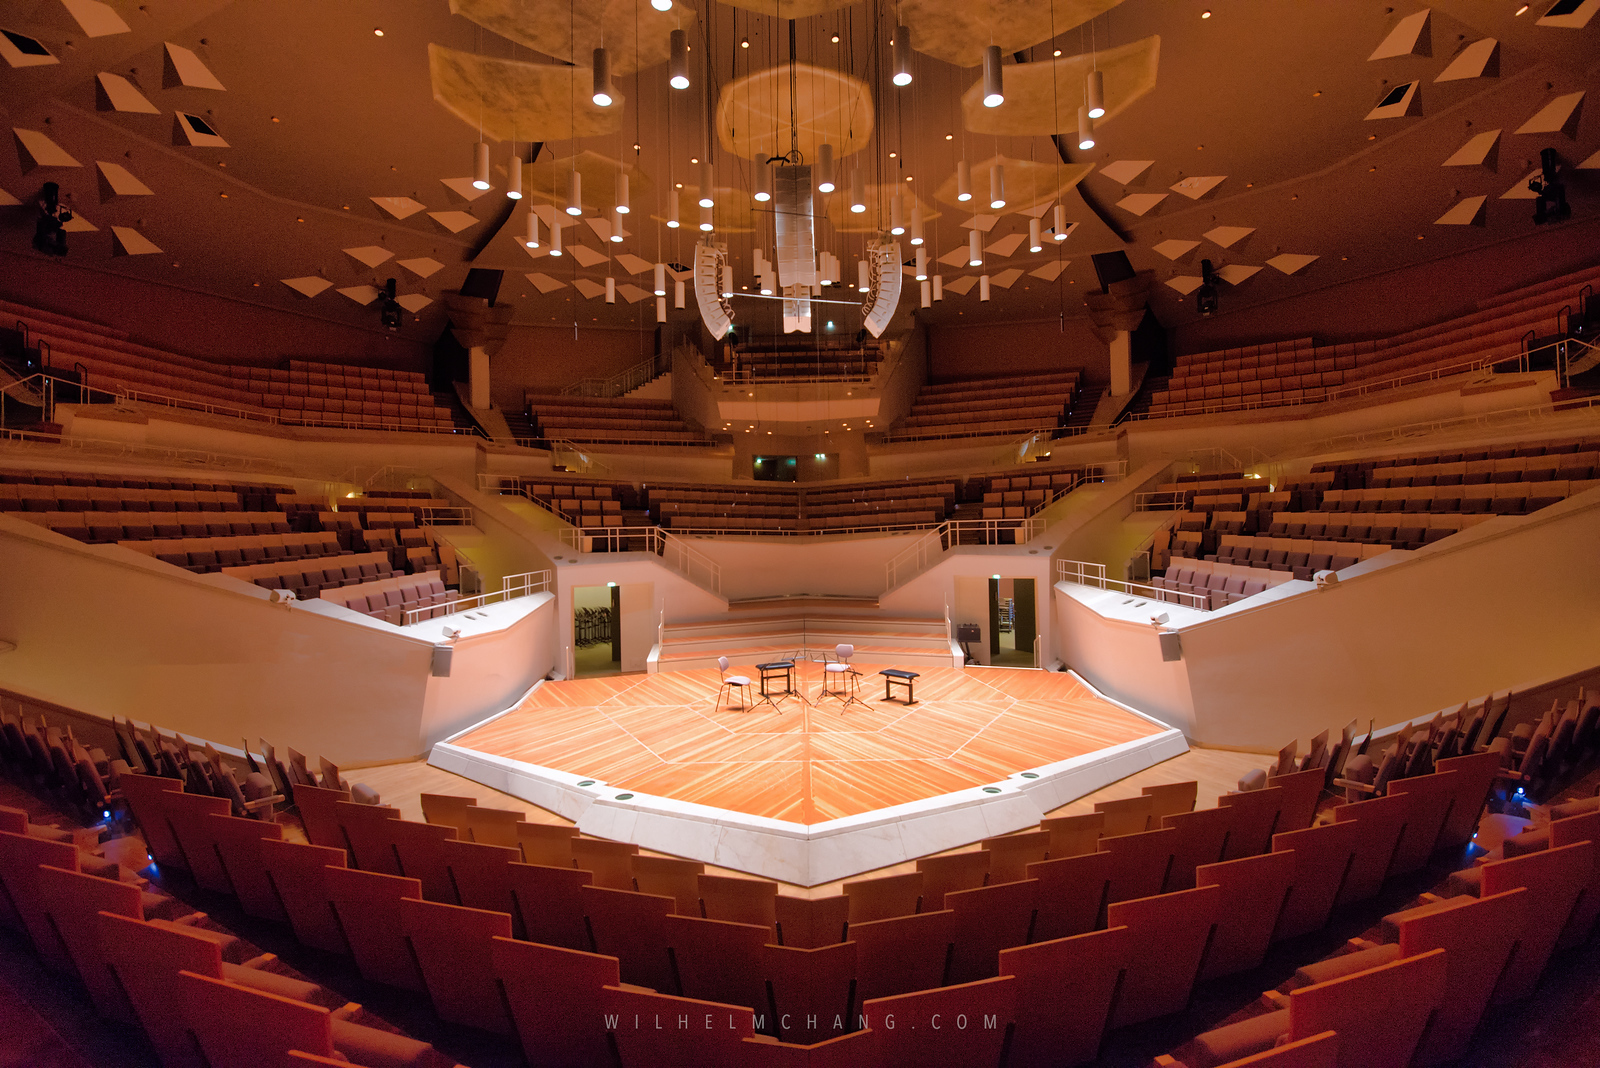 到柏林攝影 柏林愛樂演奏廳 Berlin Philharmonic Concert Hall by Wilhelm Chang